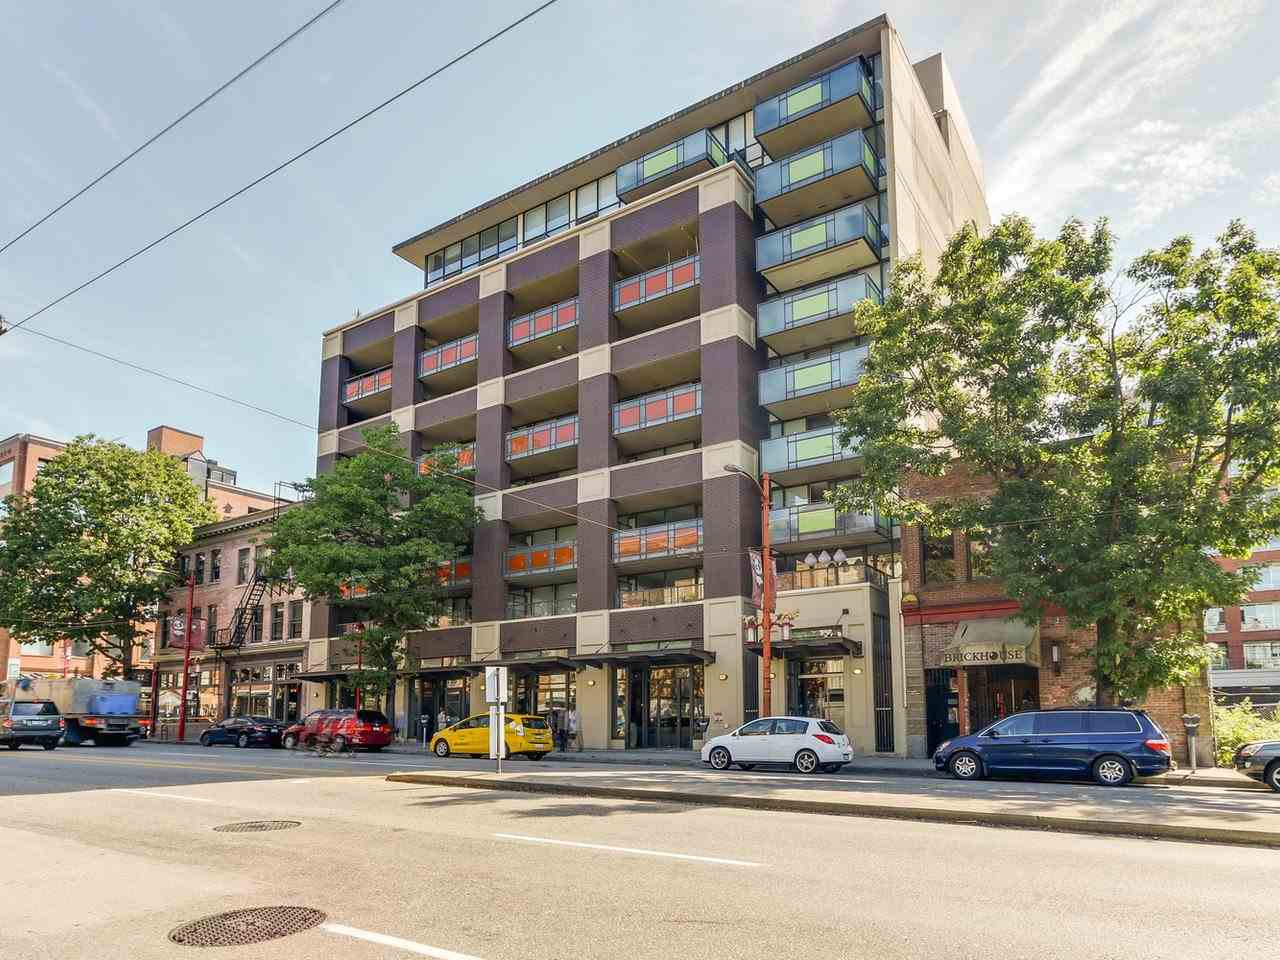 "Main Photo: 509 718 MAIN Street in Vancouver: Mount Pleasant VE Condo for sale in ""GINGER"" (Vancouver East)  : MLS® # R2185070"